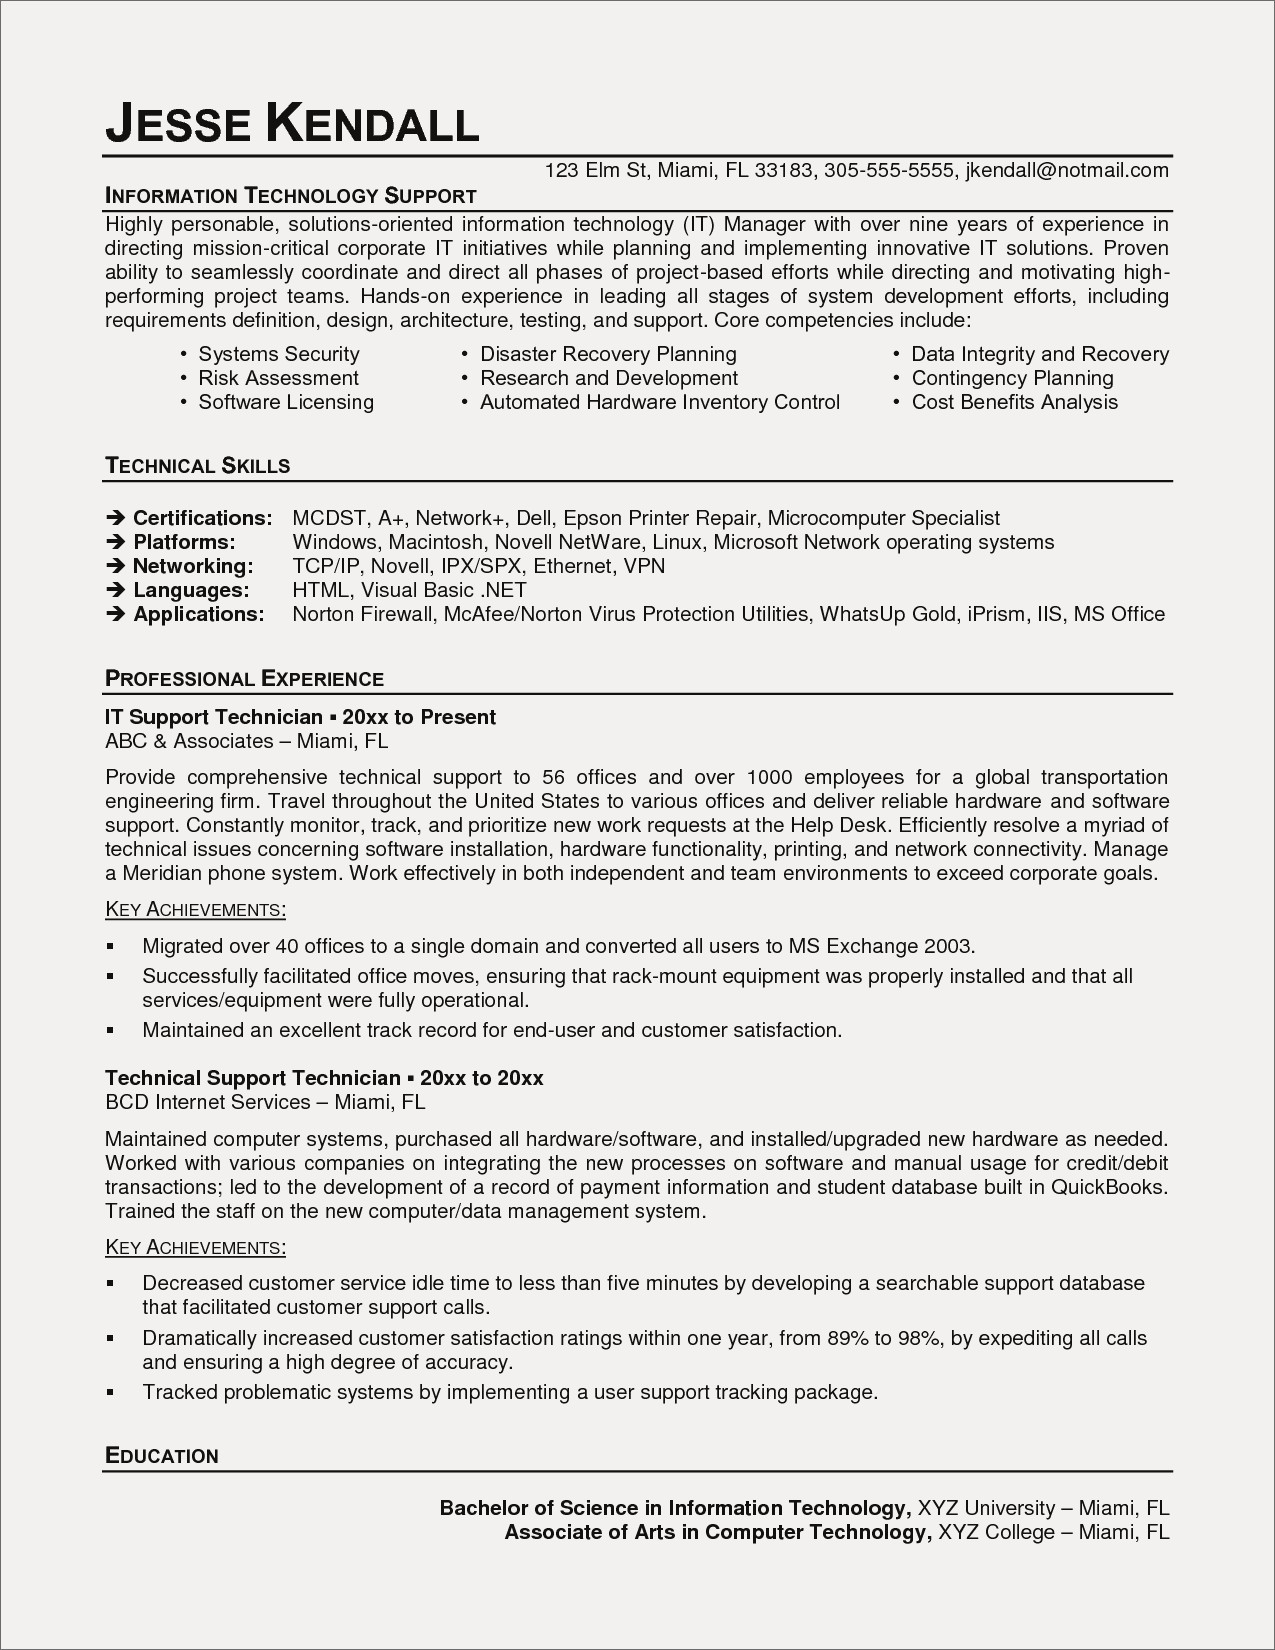 automotive consulting resume Collection-Students Resume Samples Valid Auto Mechanic Resume American Resume Sample New Student Resume 0d 5-n